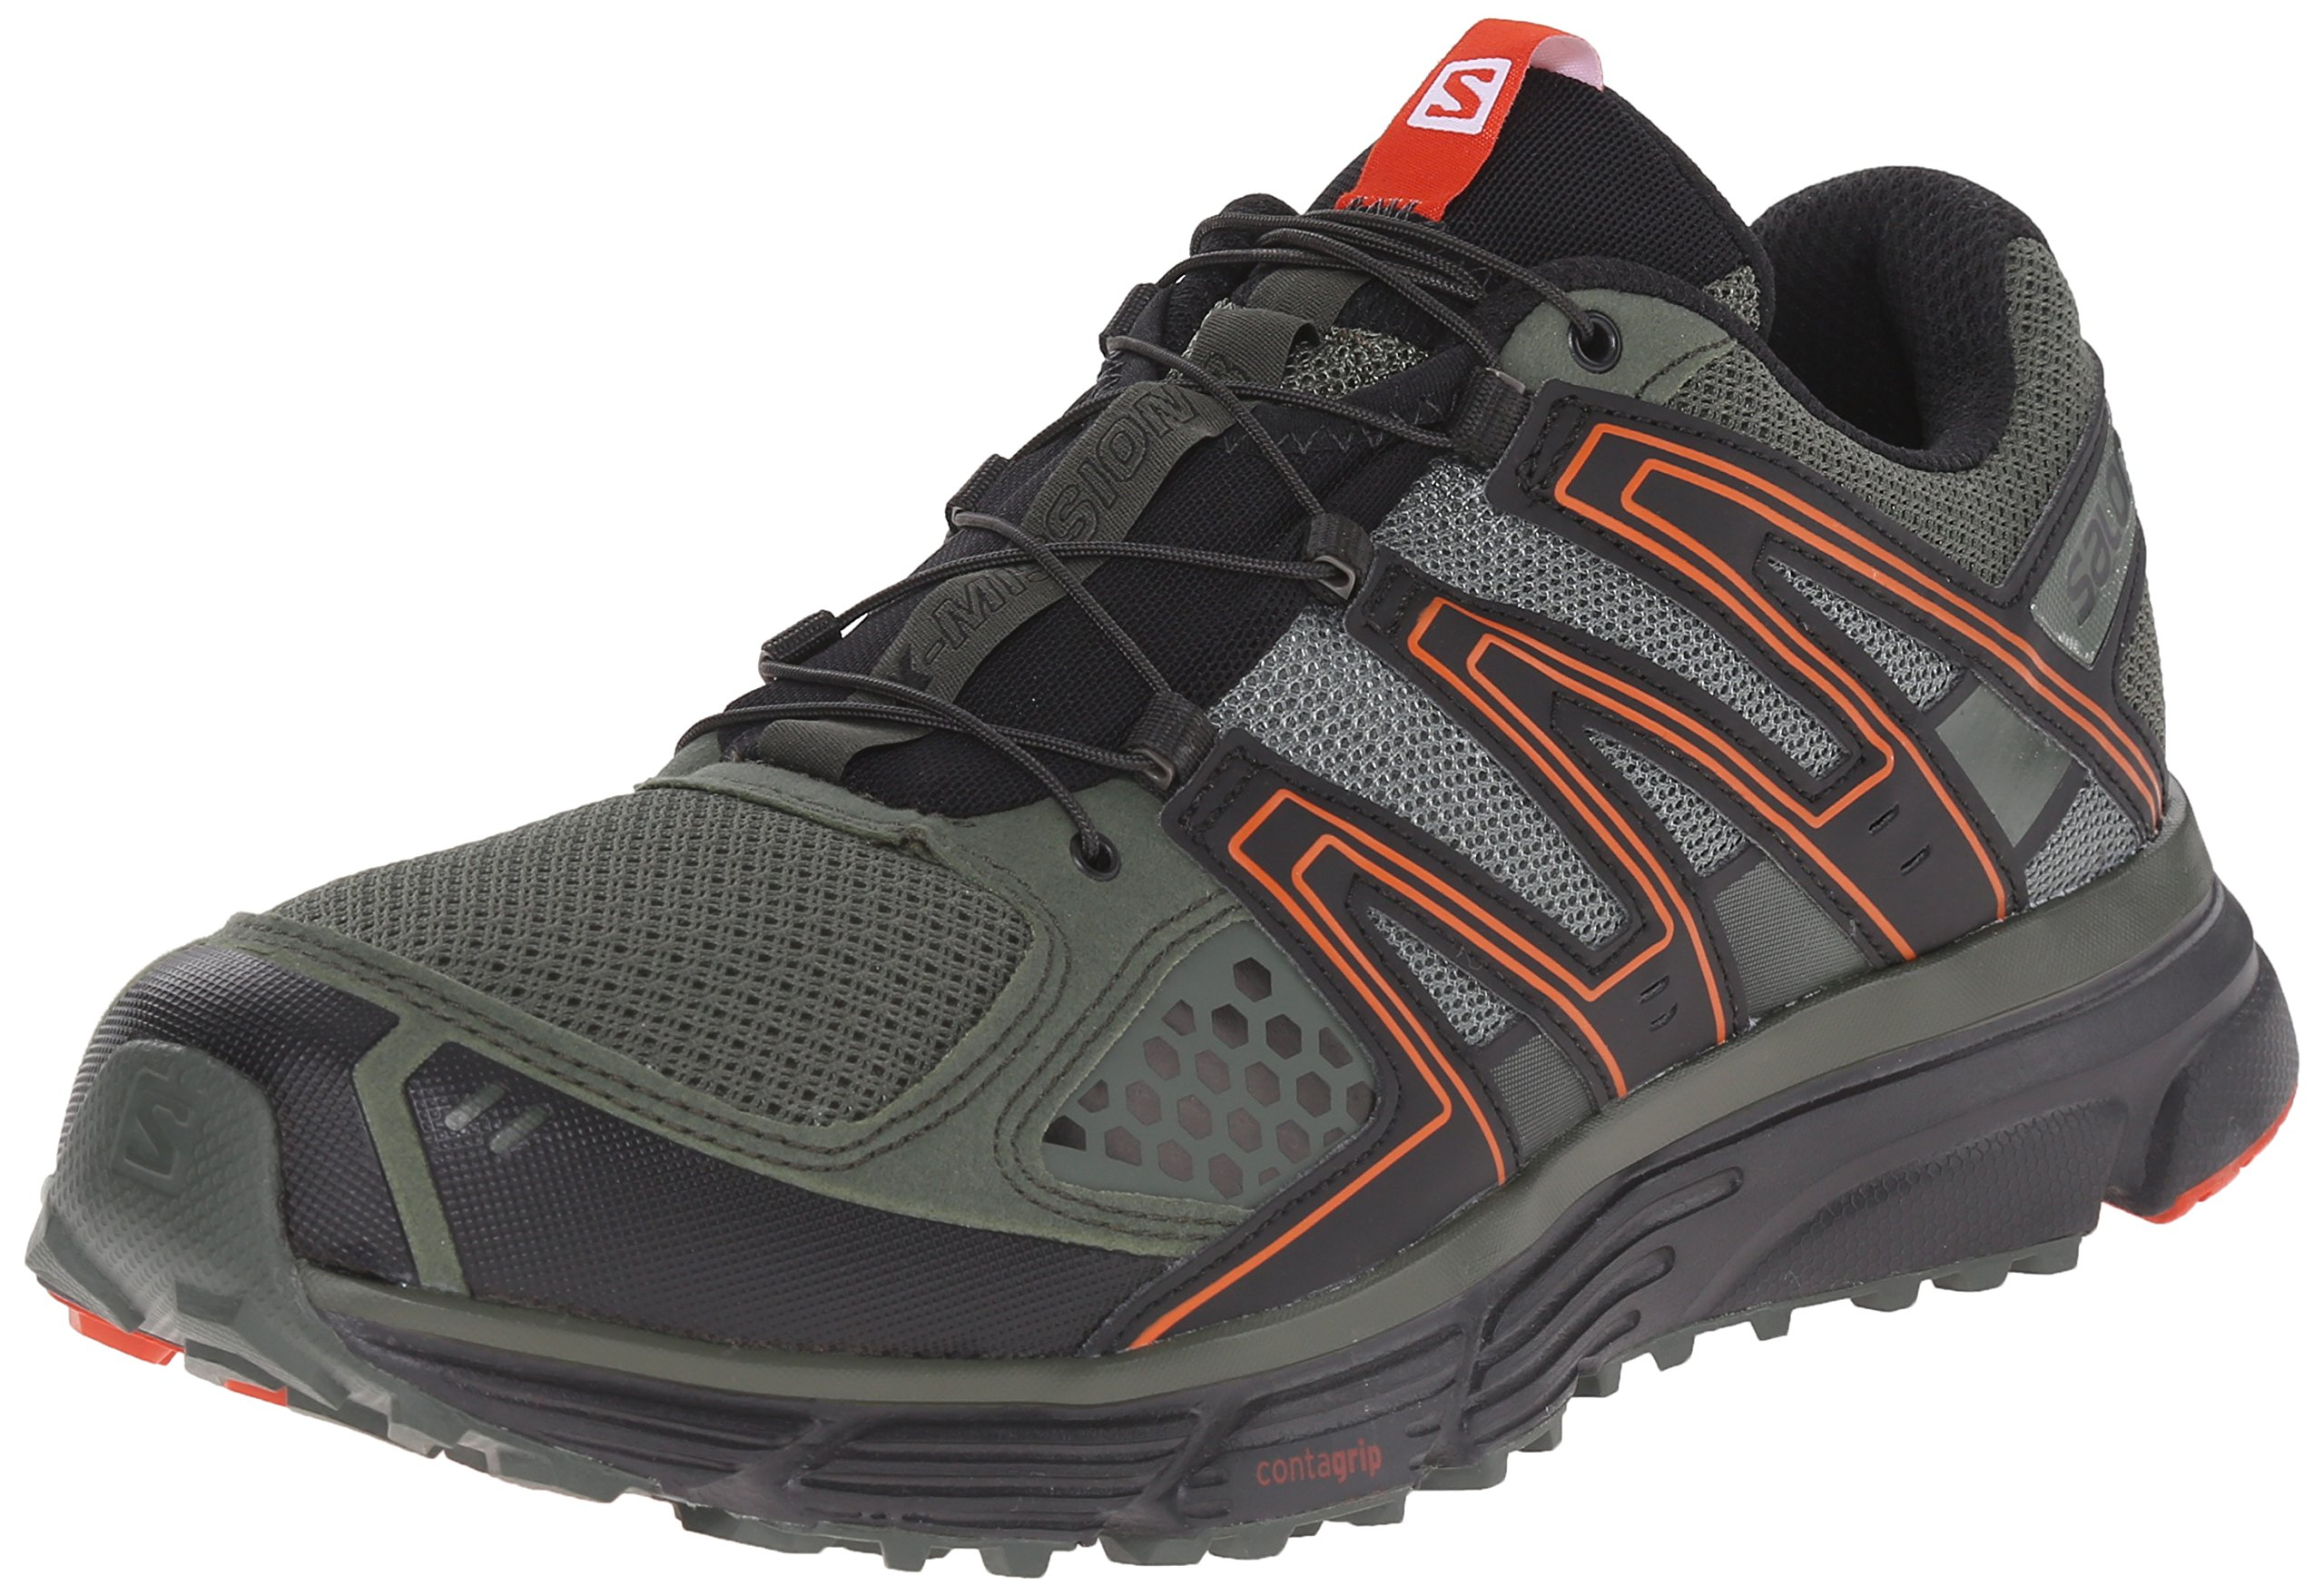 Salomon Men's X-Mission 3 Athletic Shoe, Night Forest, 8.5 M US by Salomon